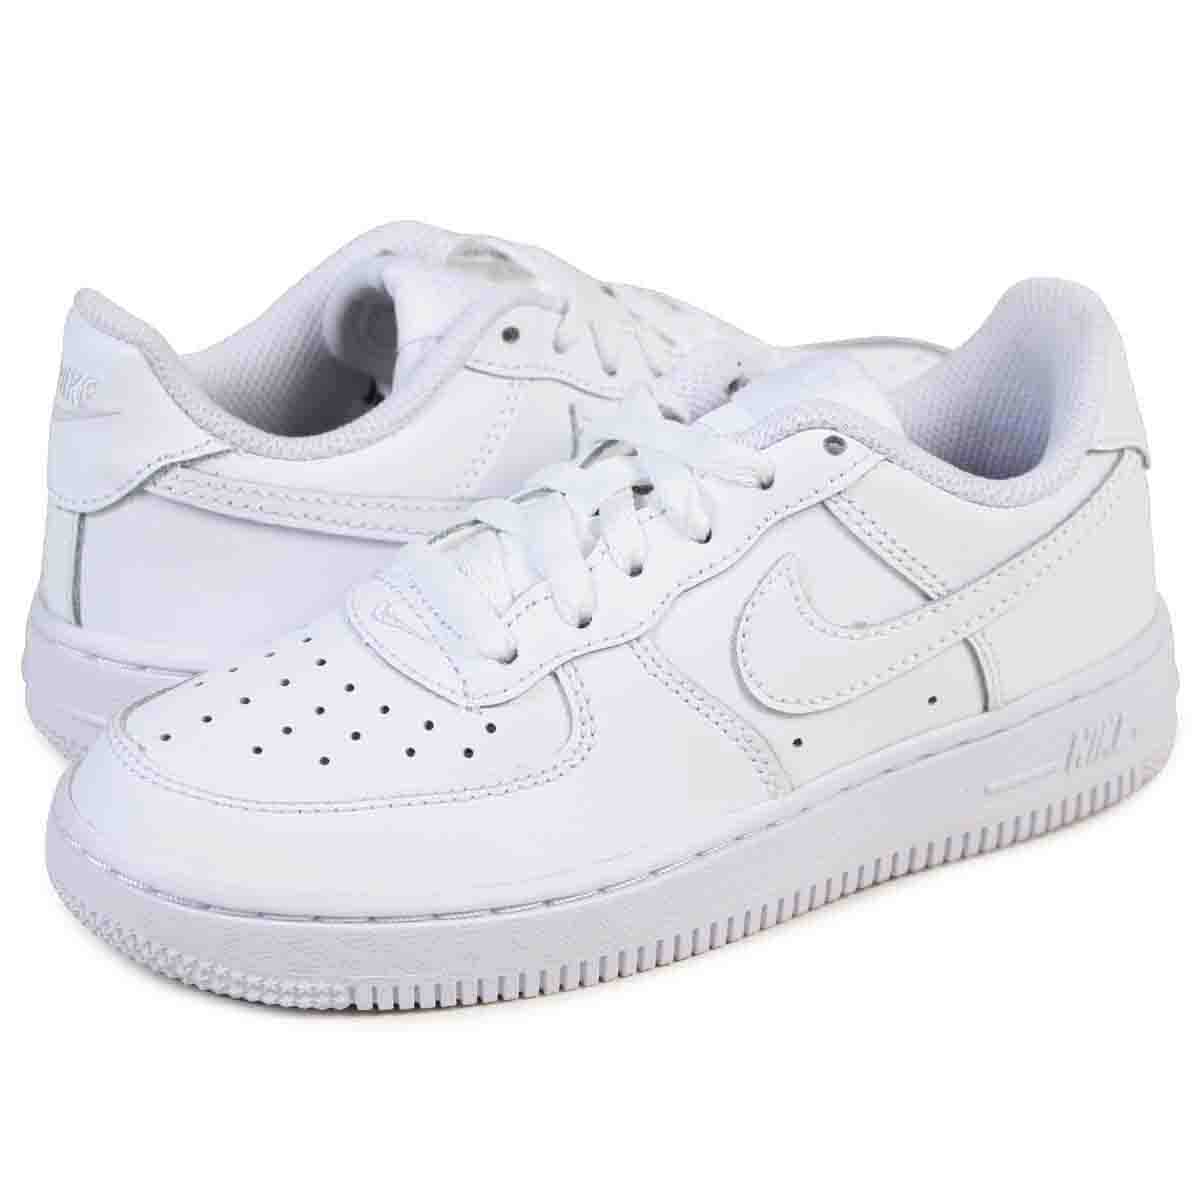 check out 76f8f 42515 nike air force 1 white kids